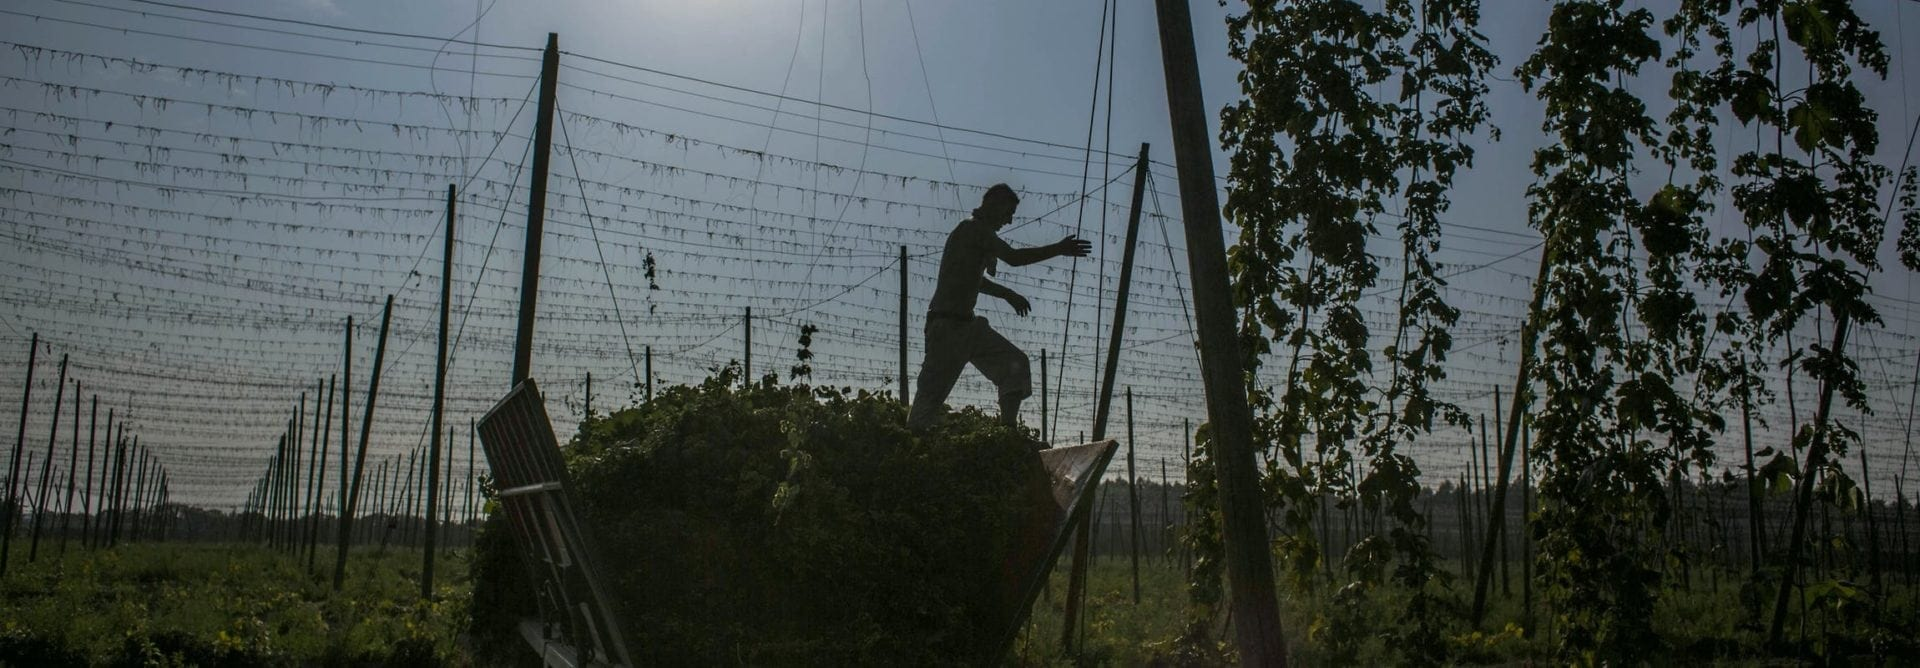 A worker steps on hops during harvesting on August 31, 2015 in Rocov, near Zatec, Czech Republic. Czech Republic is one of the world's largest hops producers, with 4600 hectares of land used for farming the plant. (Photo by Matej Divizna via Getty Images)